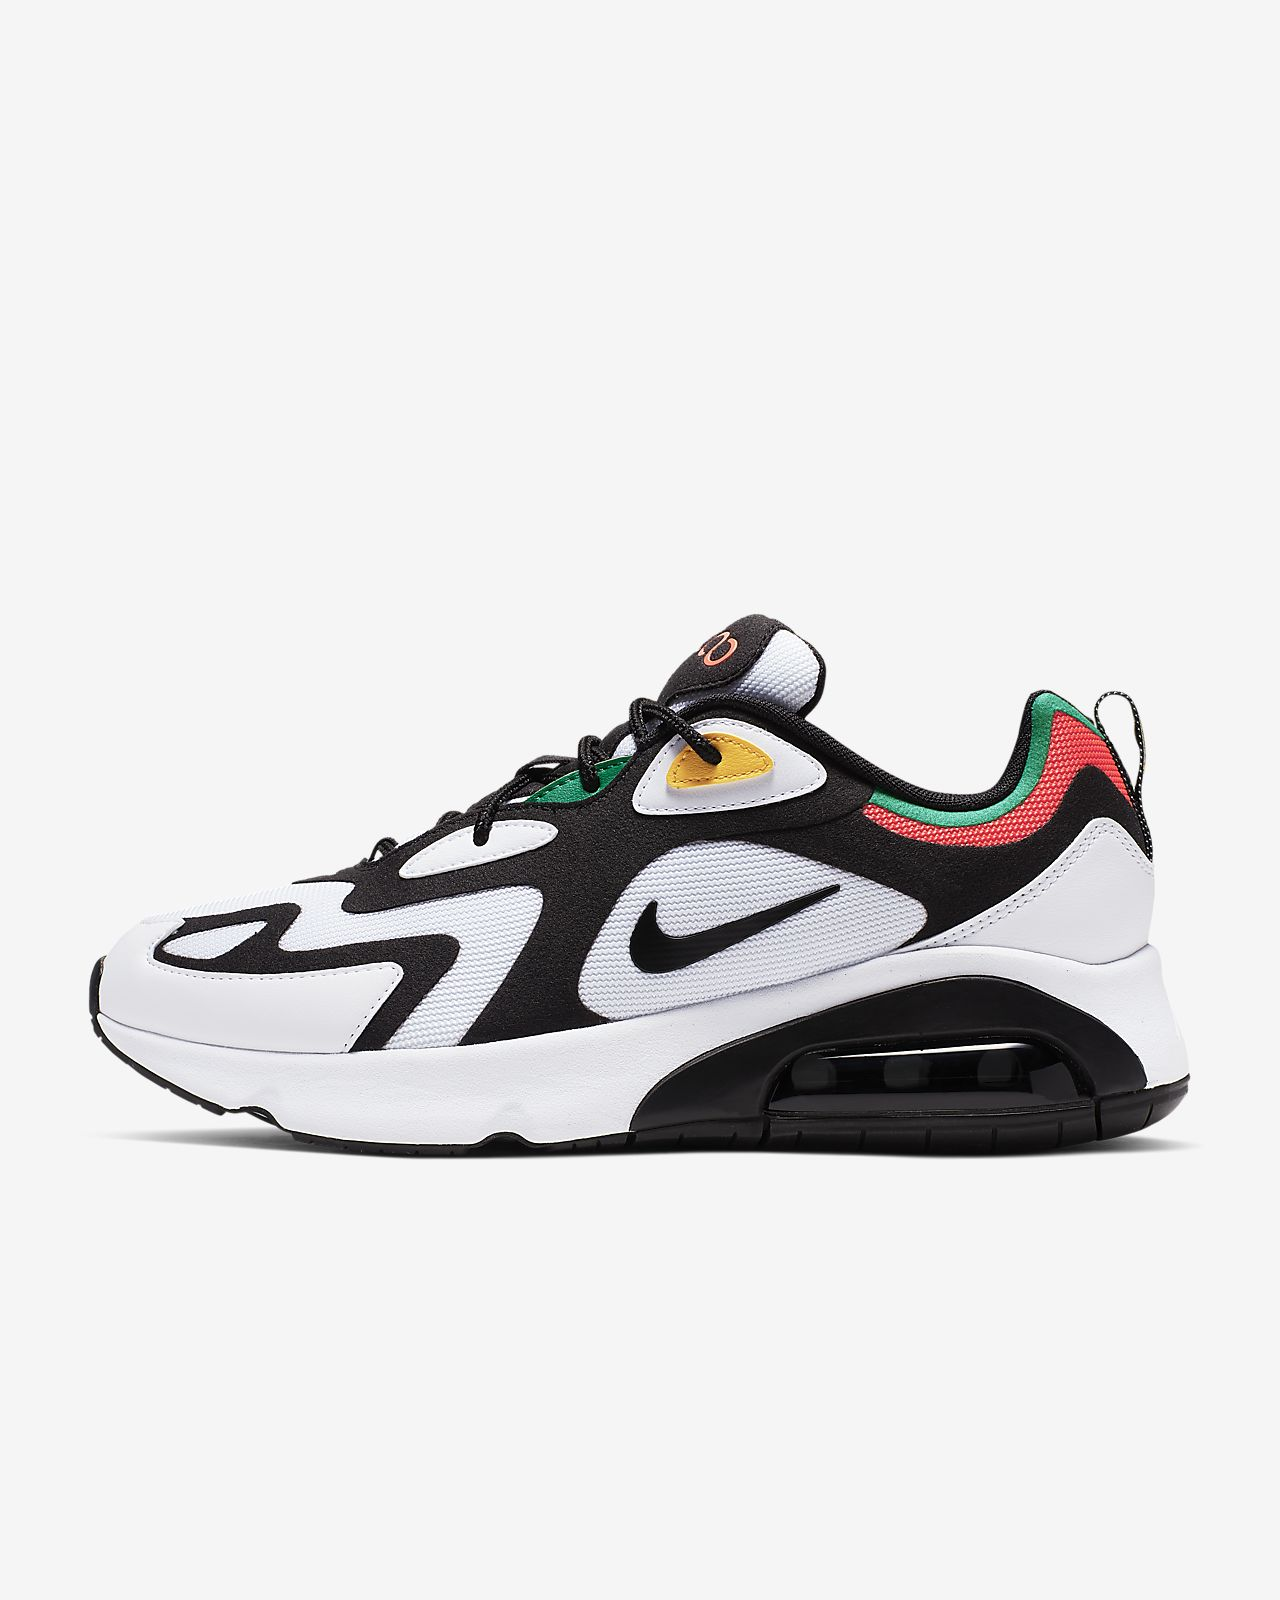 Nike Air Max 200 (2000 World Stage) Men's Shoe